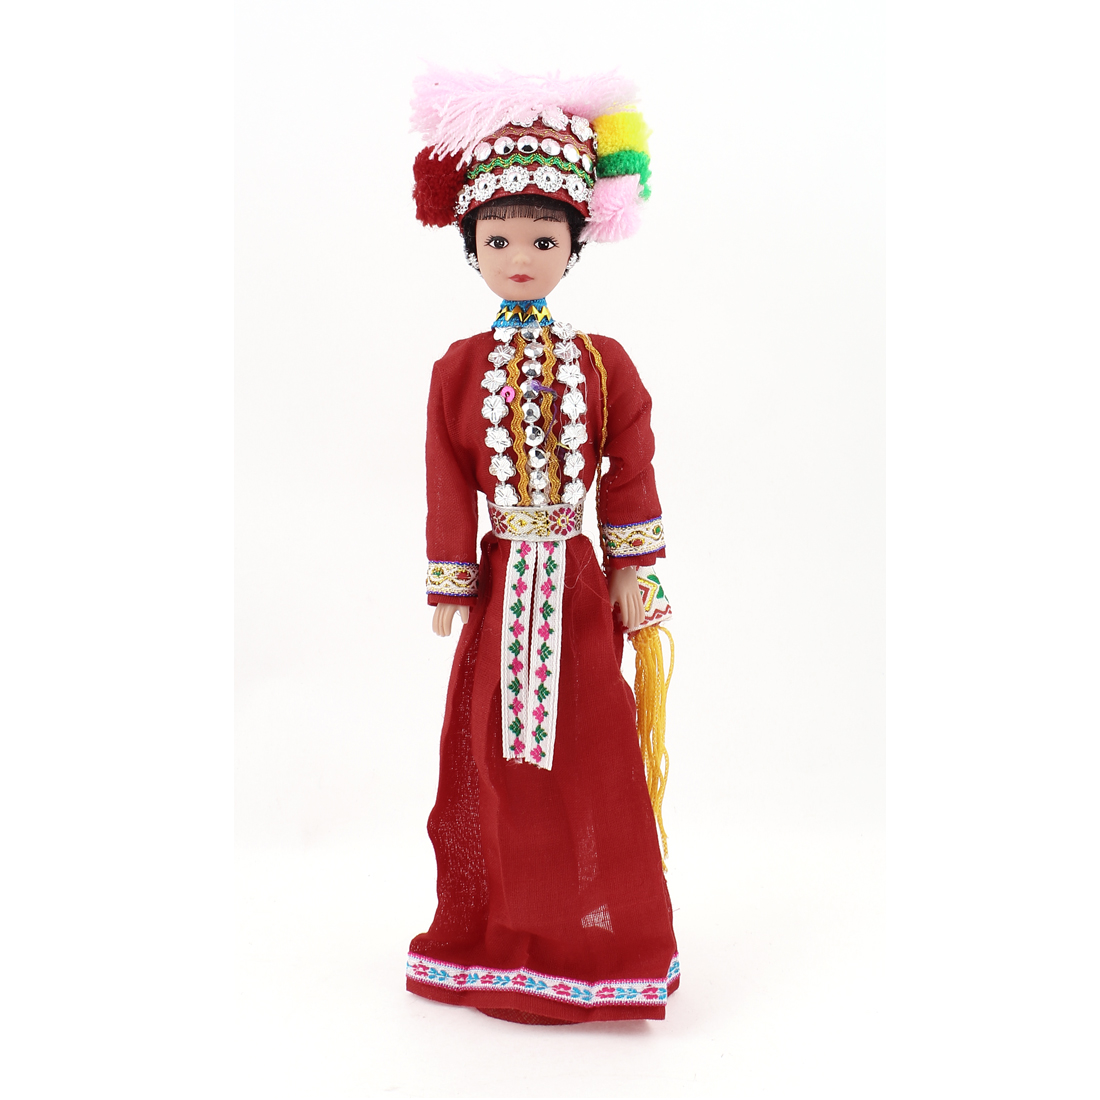 Chinese Characteristic Hani Nationality Ethnic Minority Girl Doll Souvenir Gift